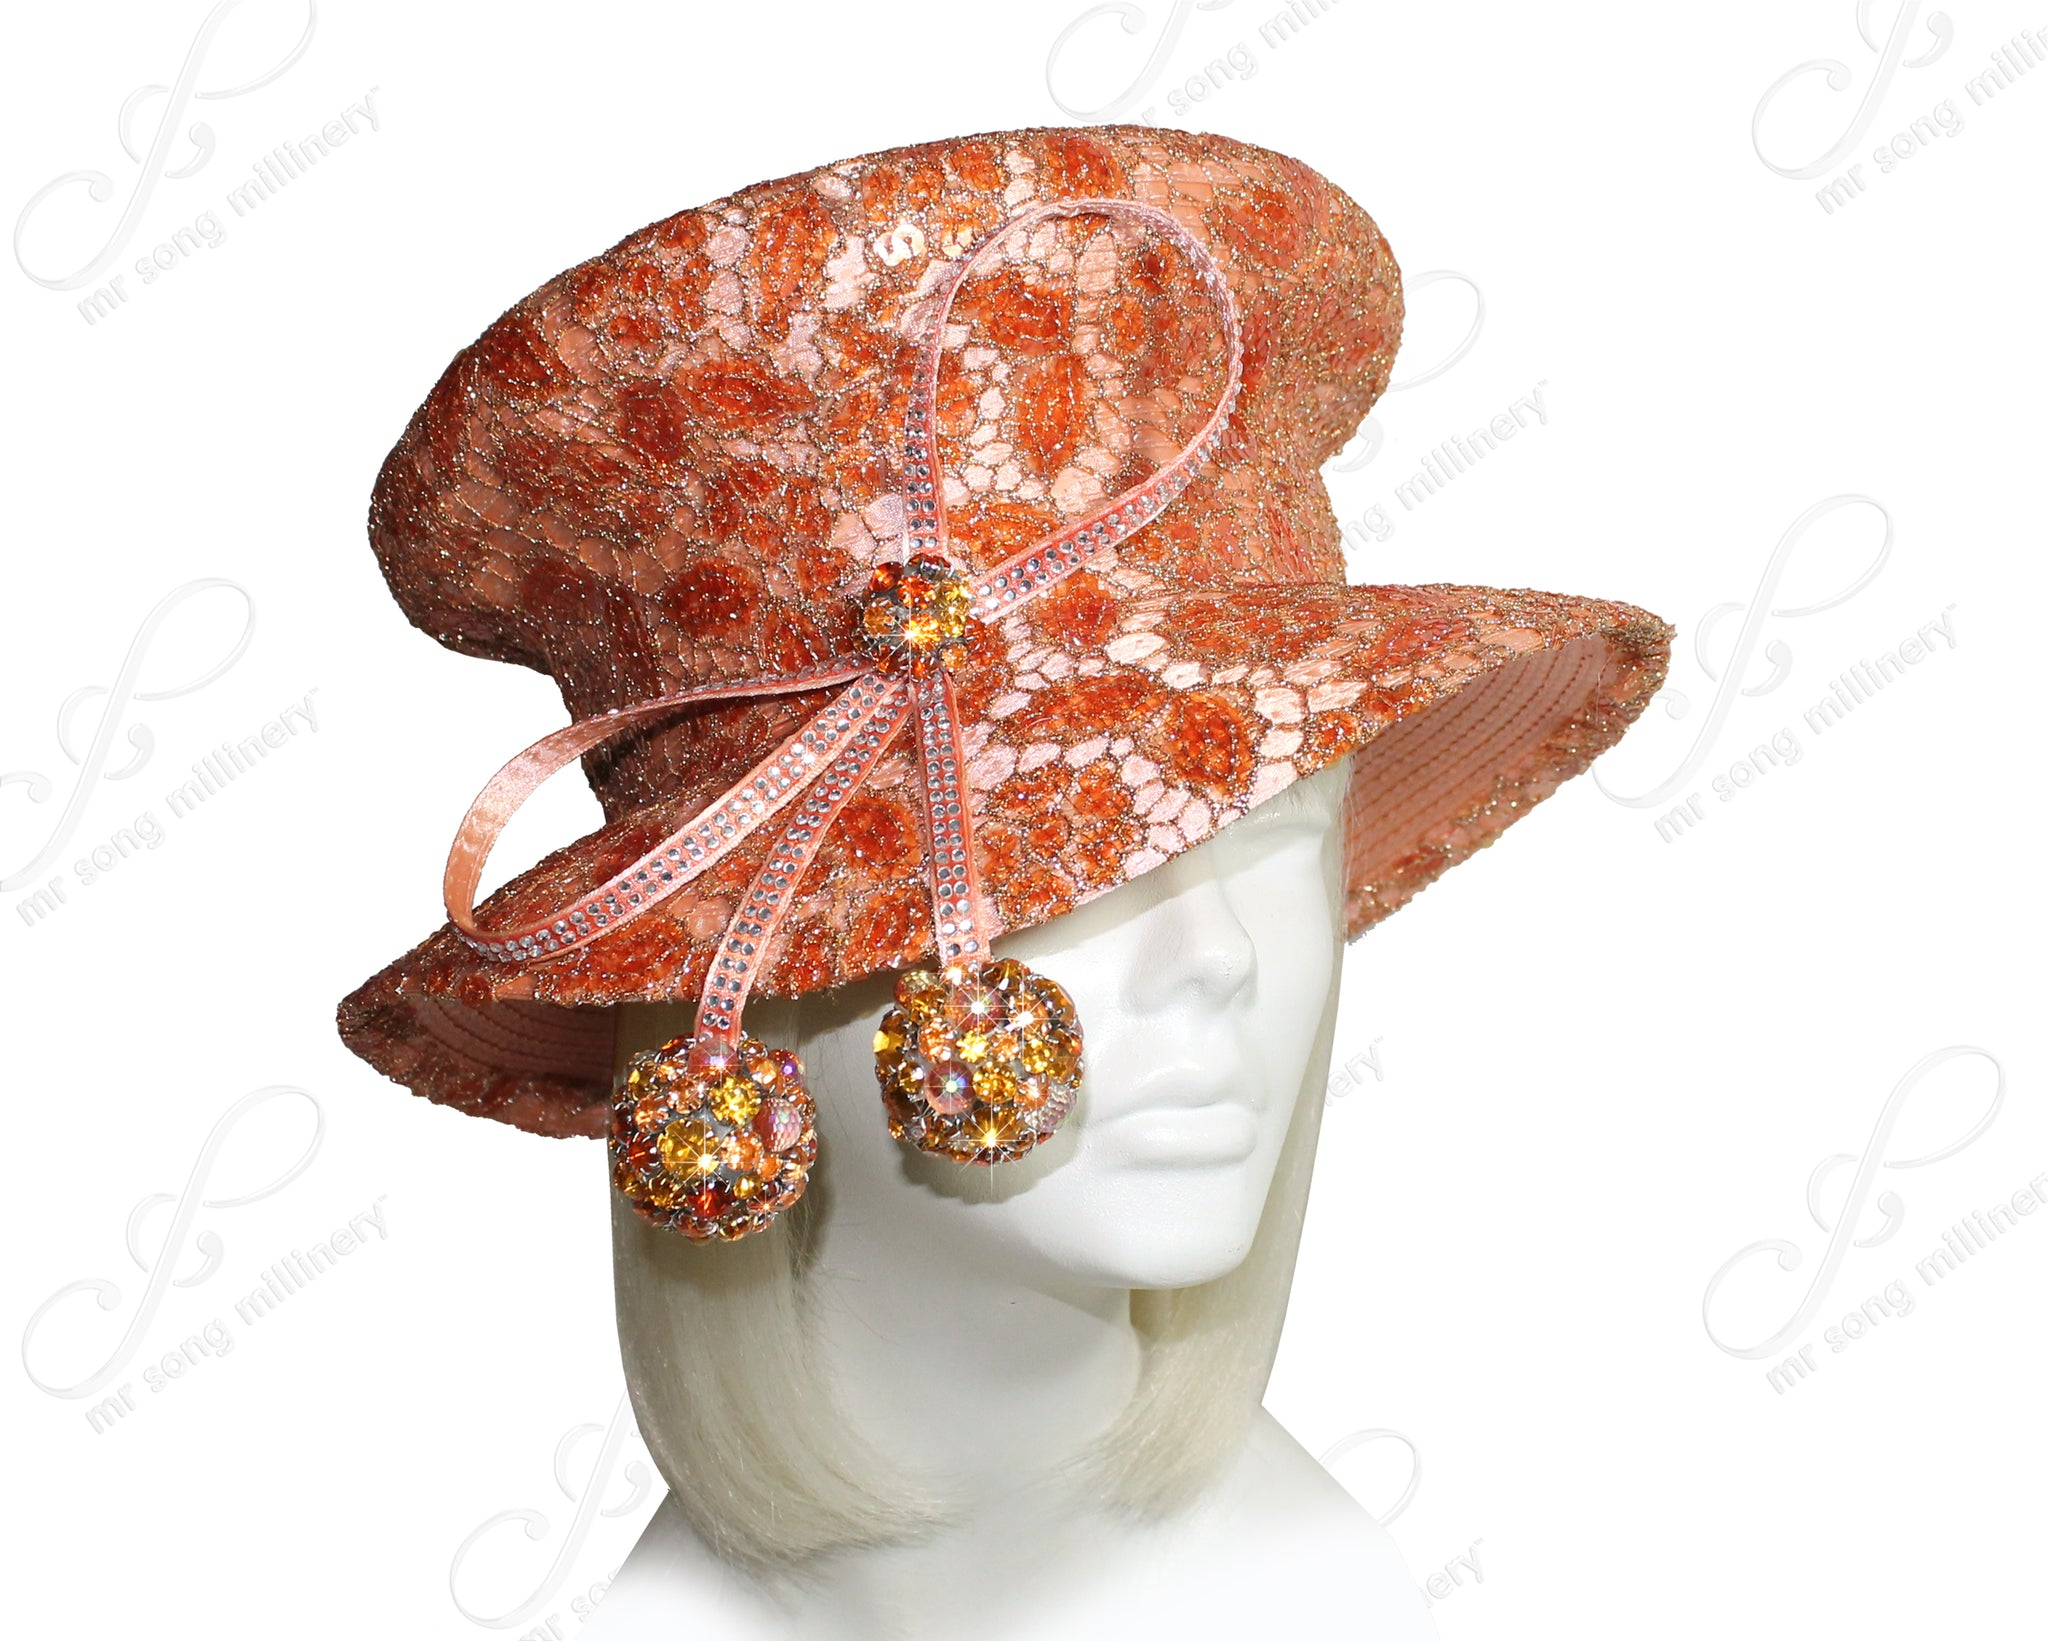 Mr. Song Millinery Mushroom Crown Medium Brim Hat With Premium Lace & Rhinestones - Peach Orange